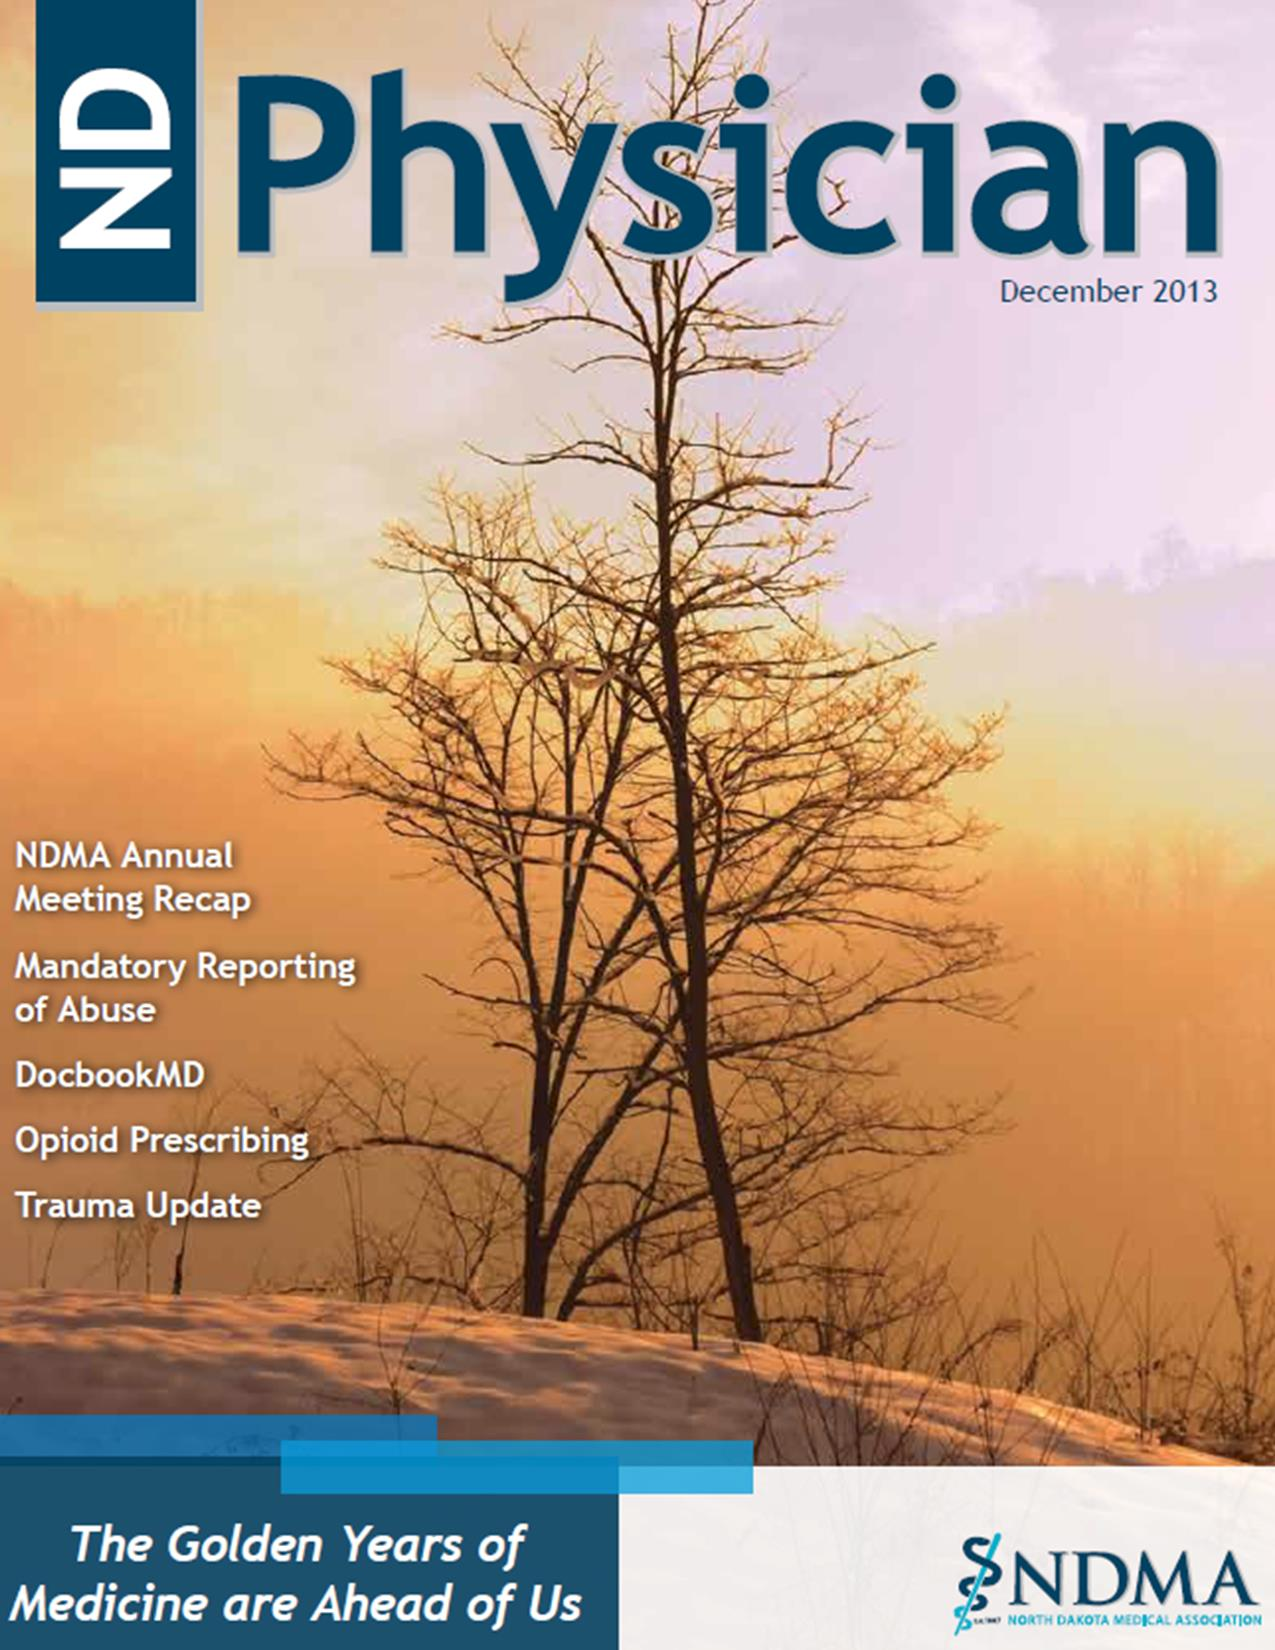 ND Physician December 2013 magazine cover